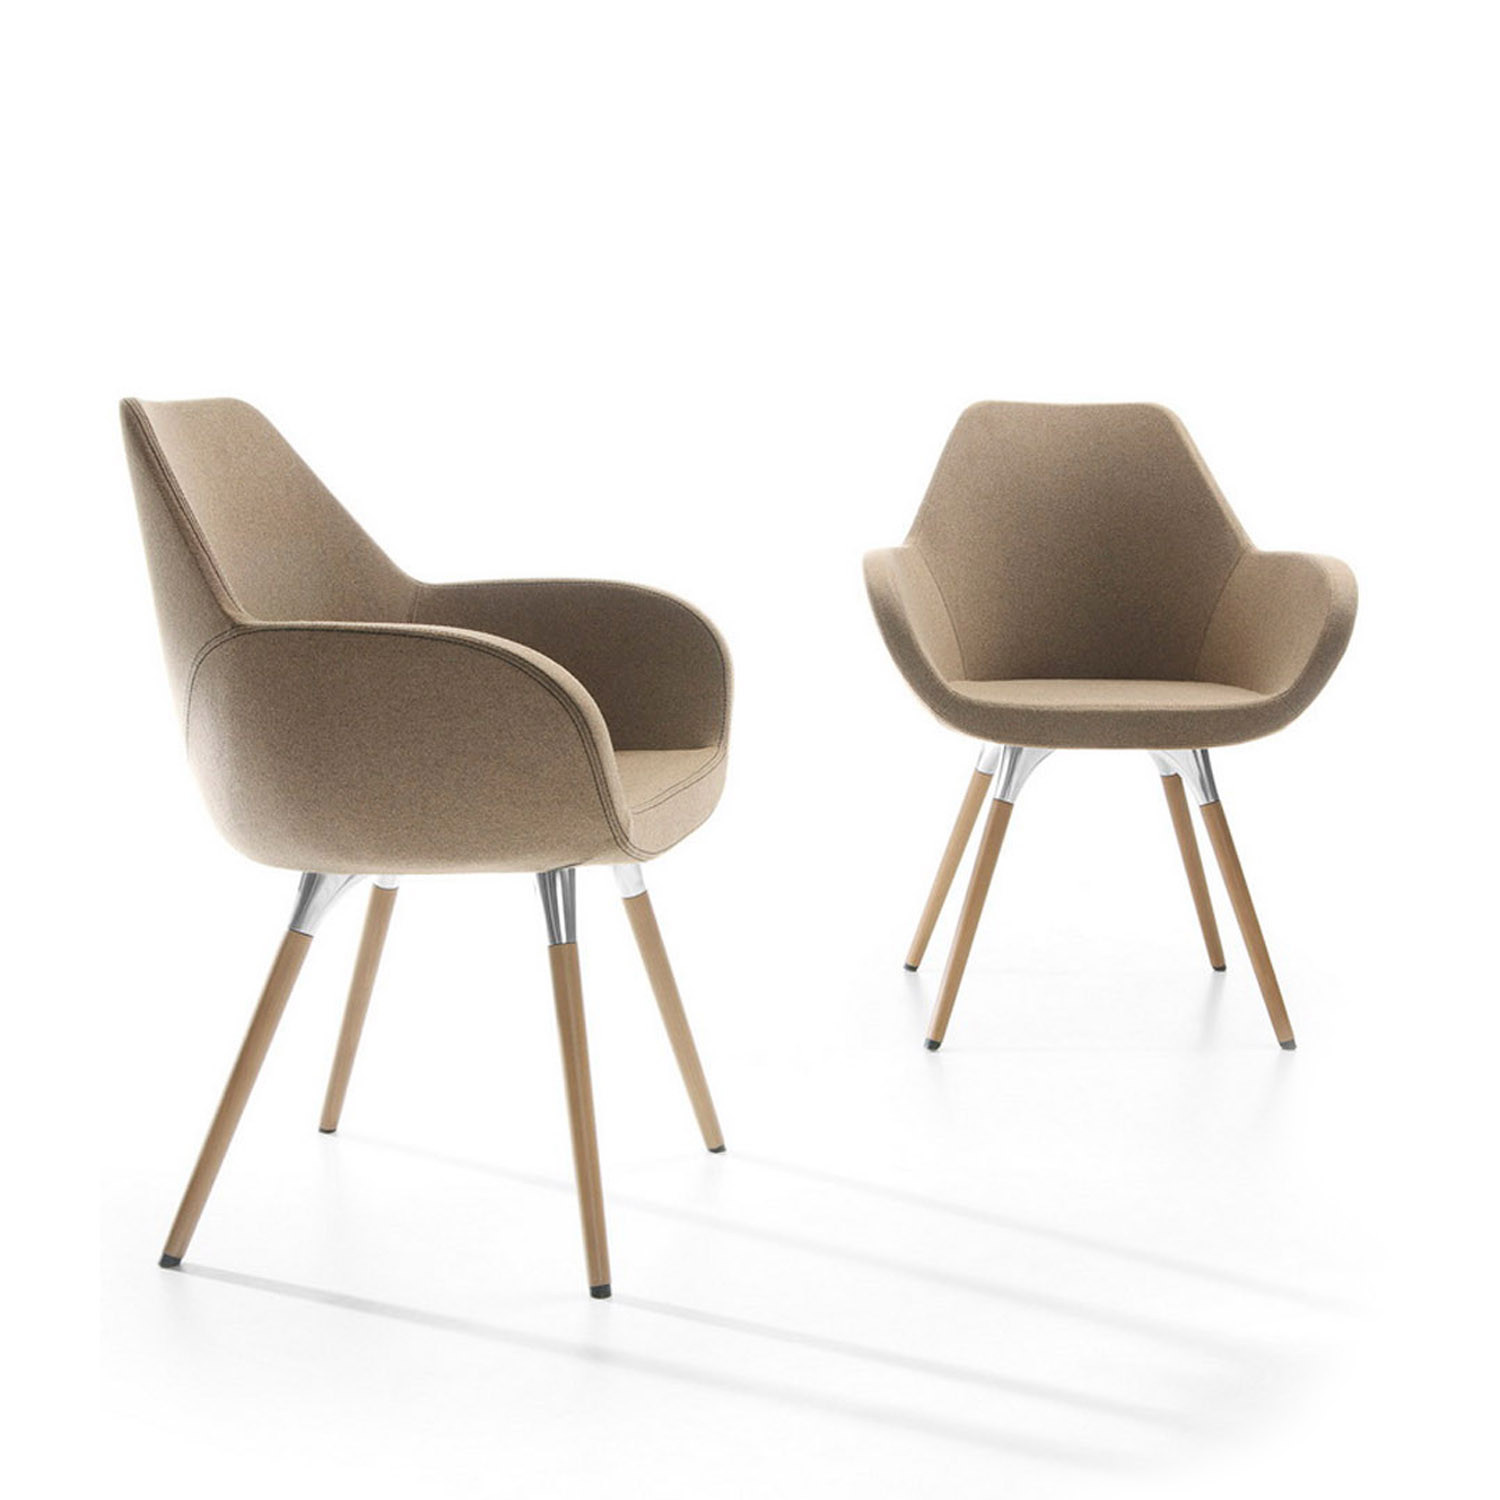 Reflex Wood Armchairs